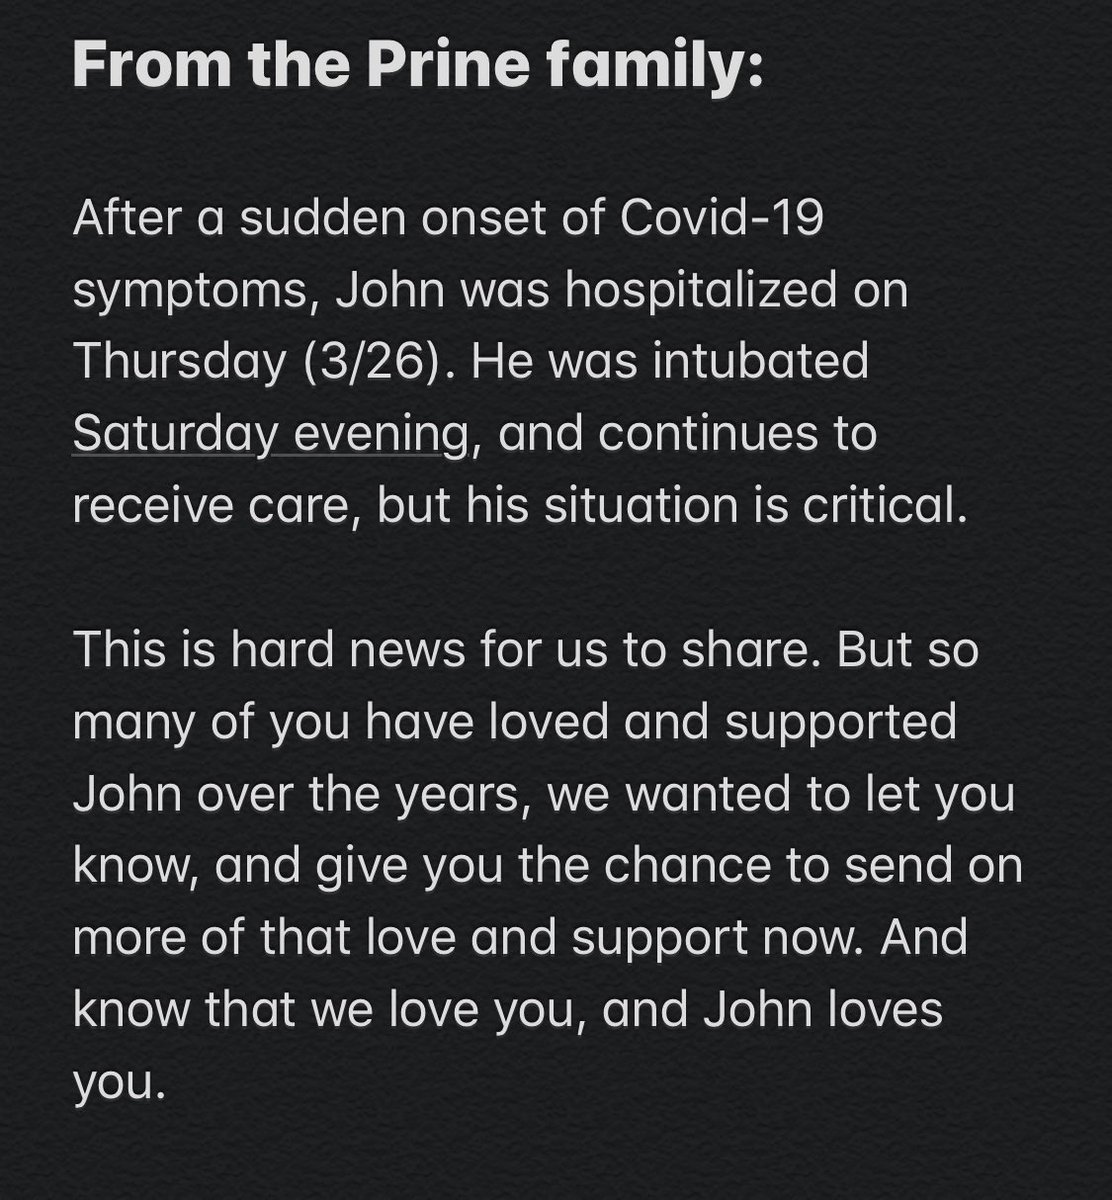 An update on John https://t.co/fPQbv0tLyB